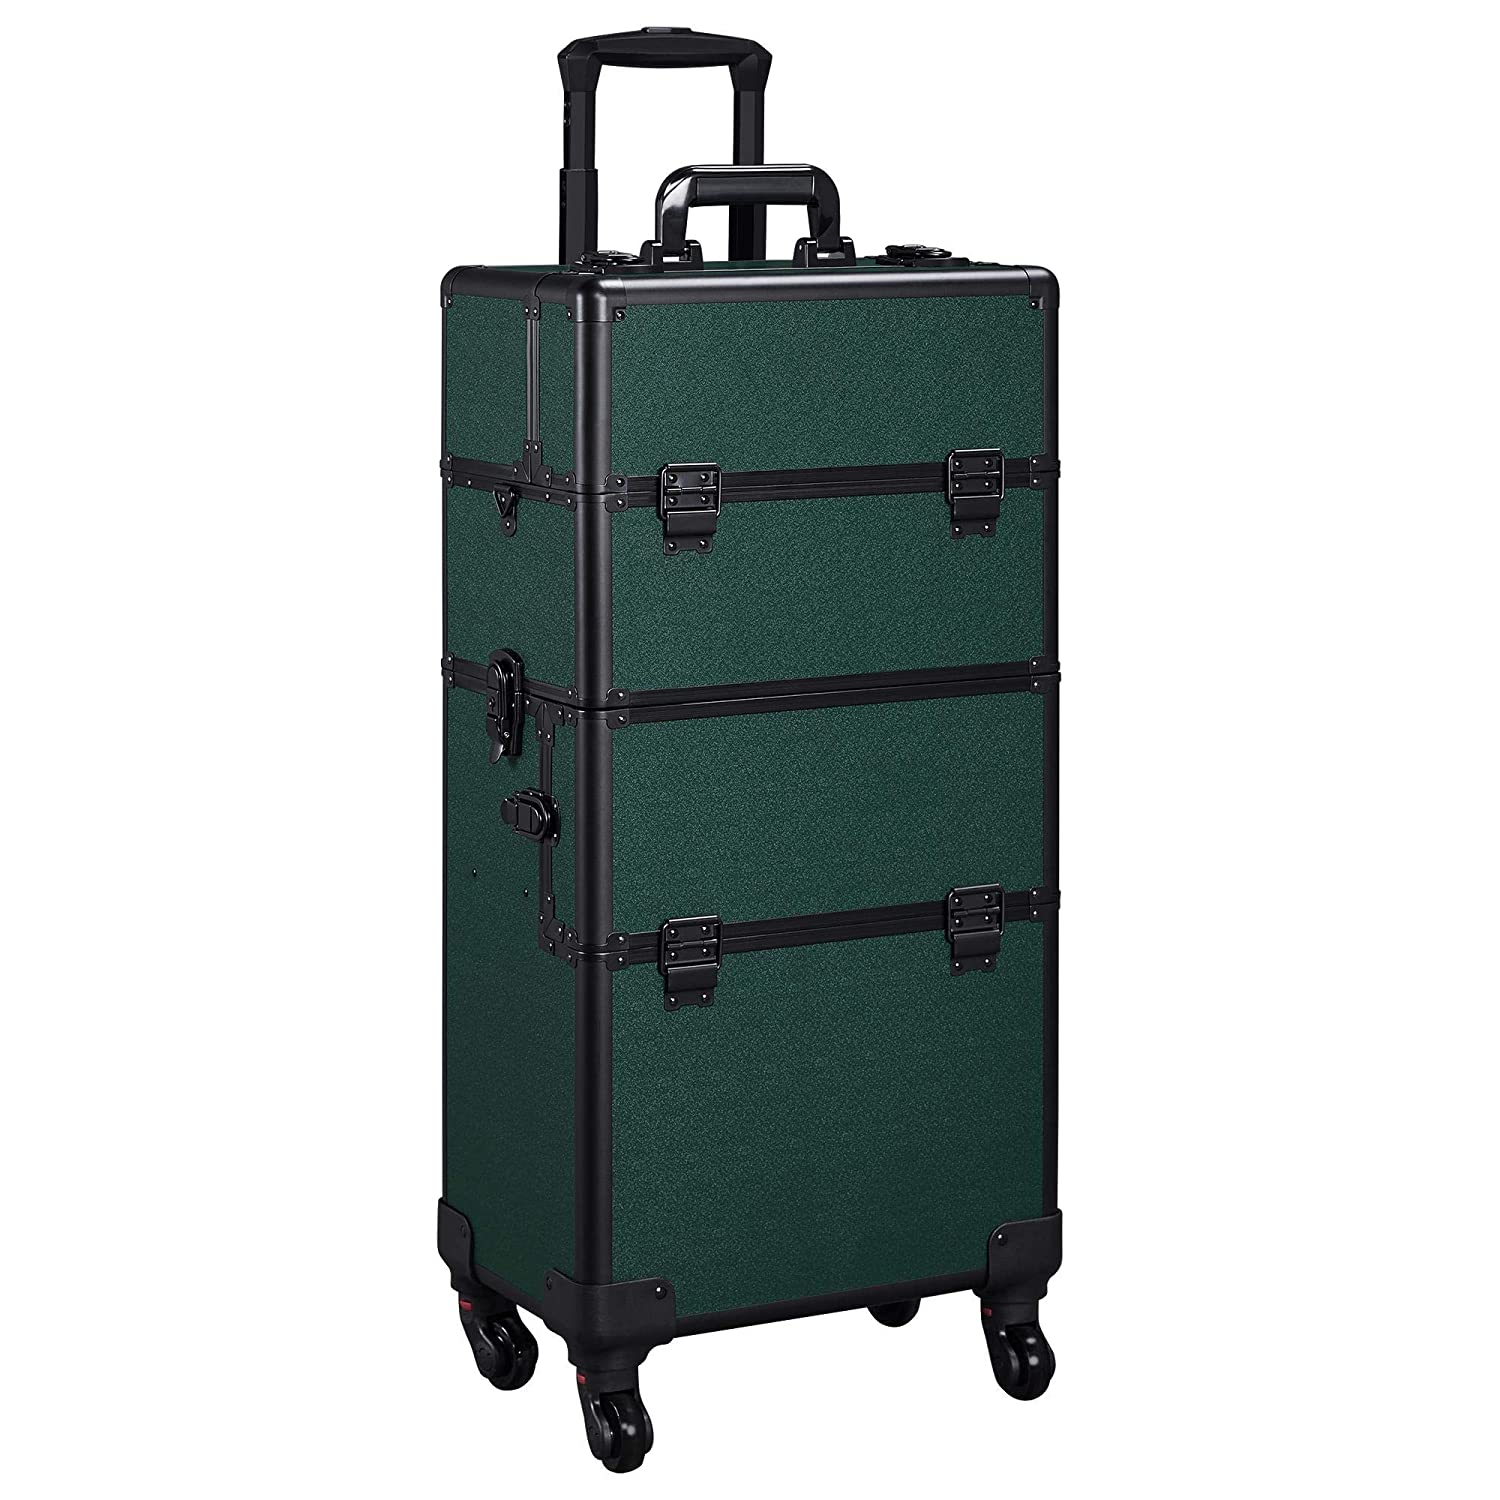 Yaheetech 3 in 1 Train Case Professional Dark Green Rolling Cosmetic Case Makeup Trolley Organizer Case with Carrying Strap